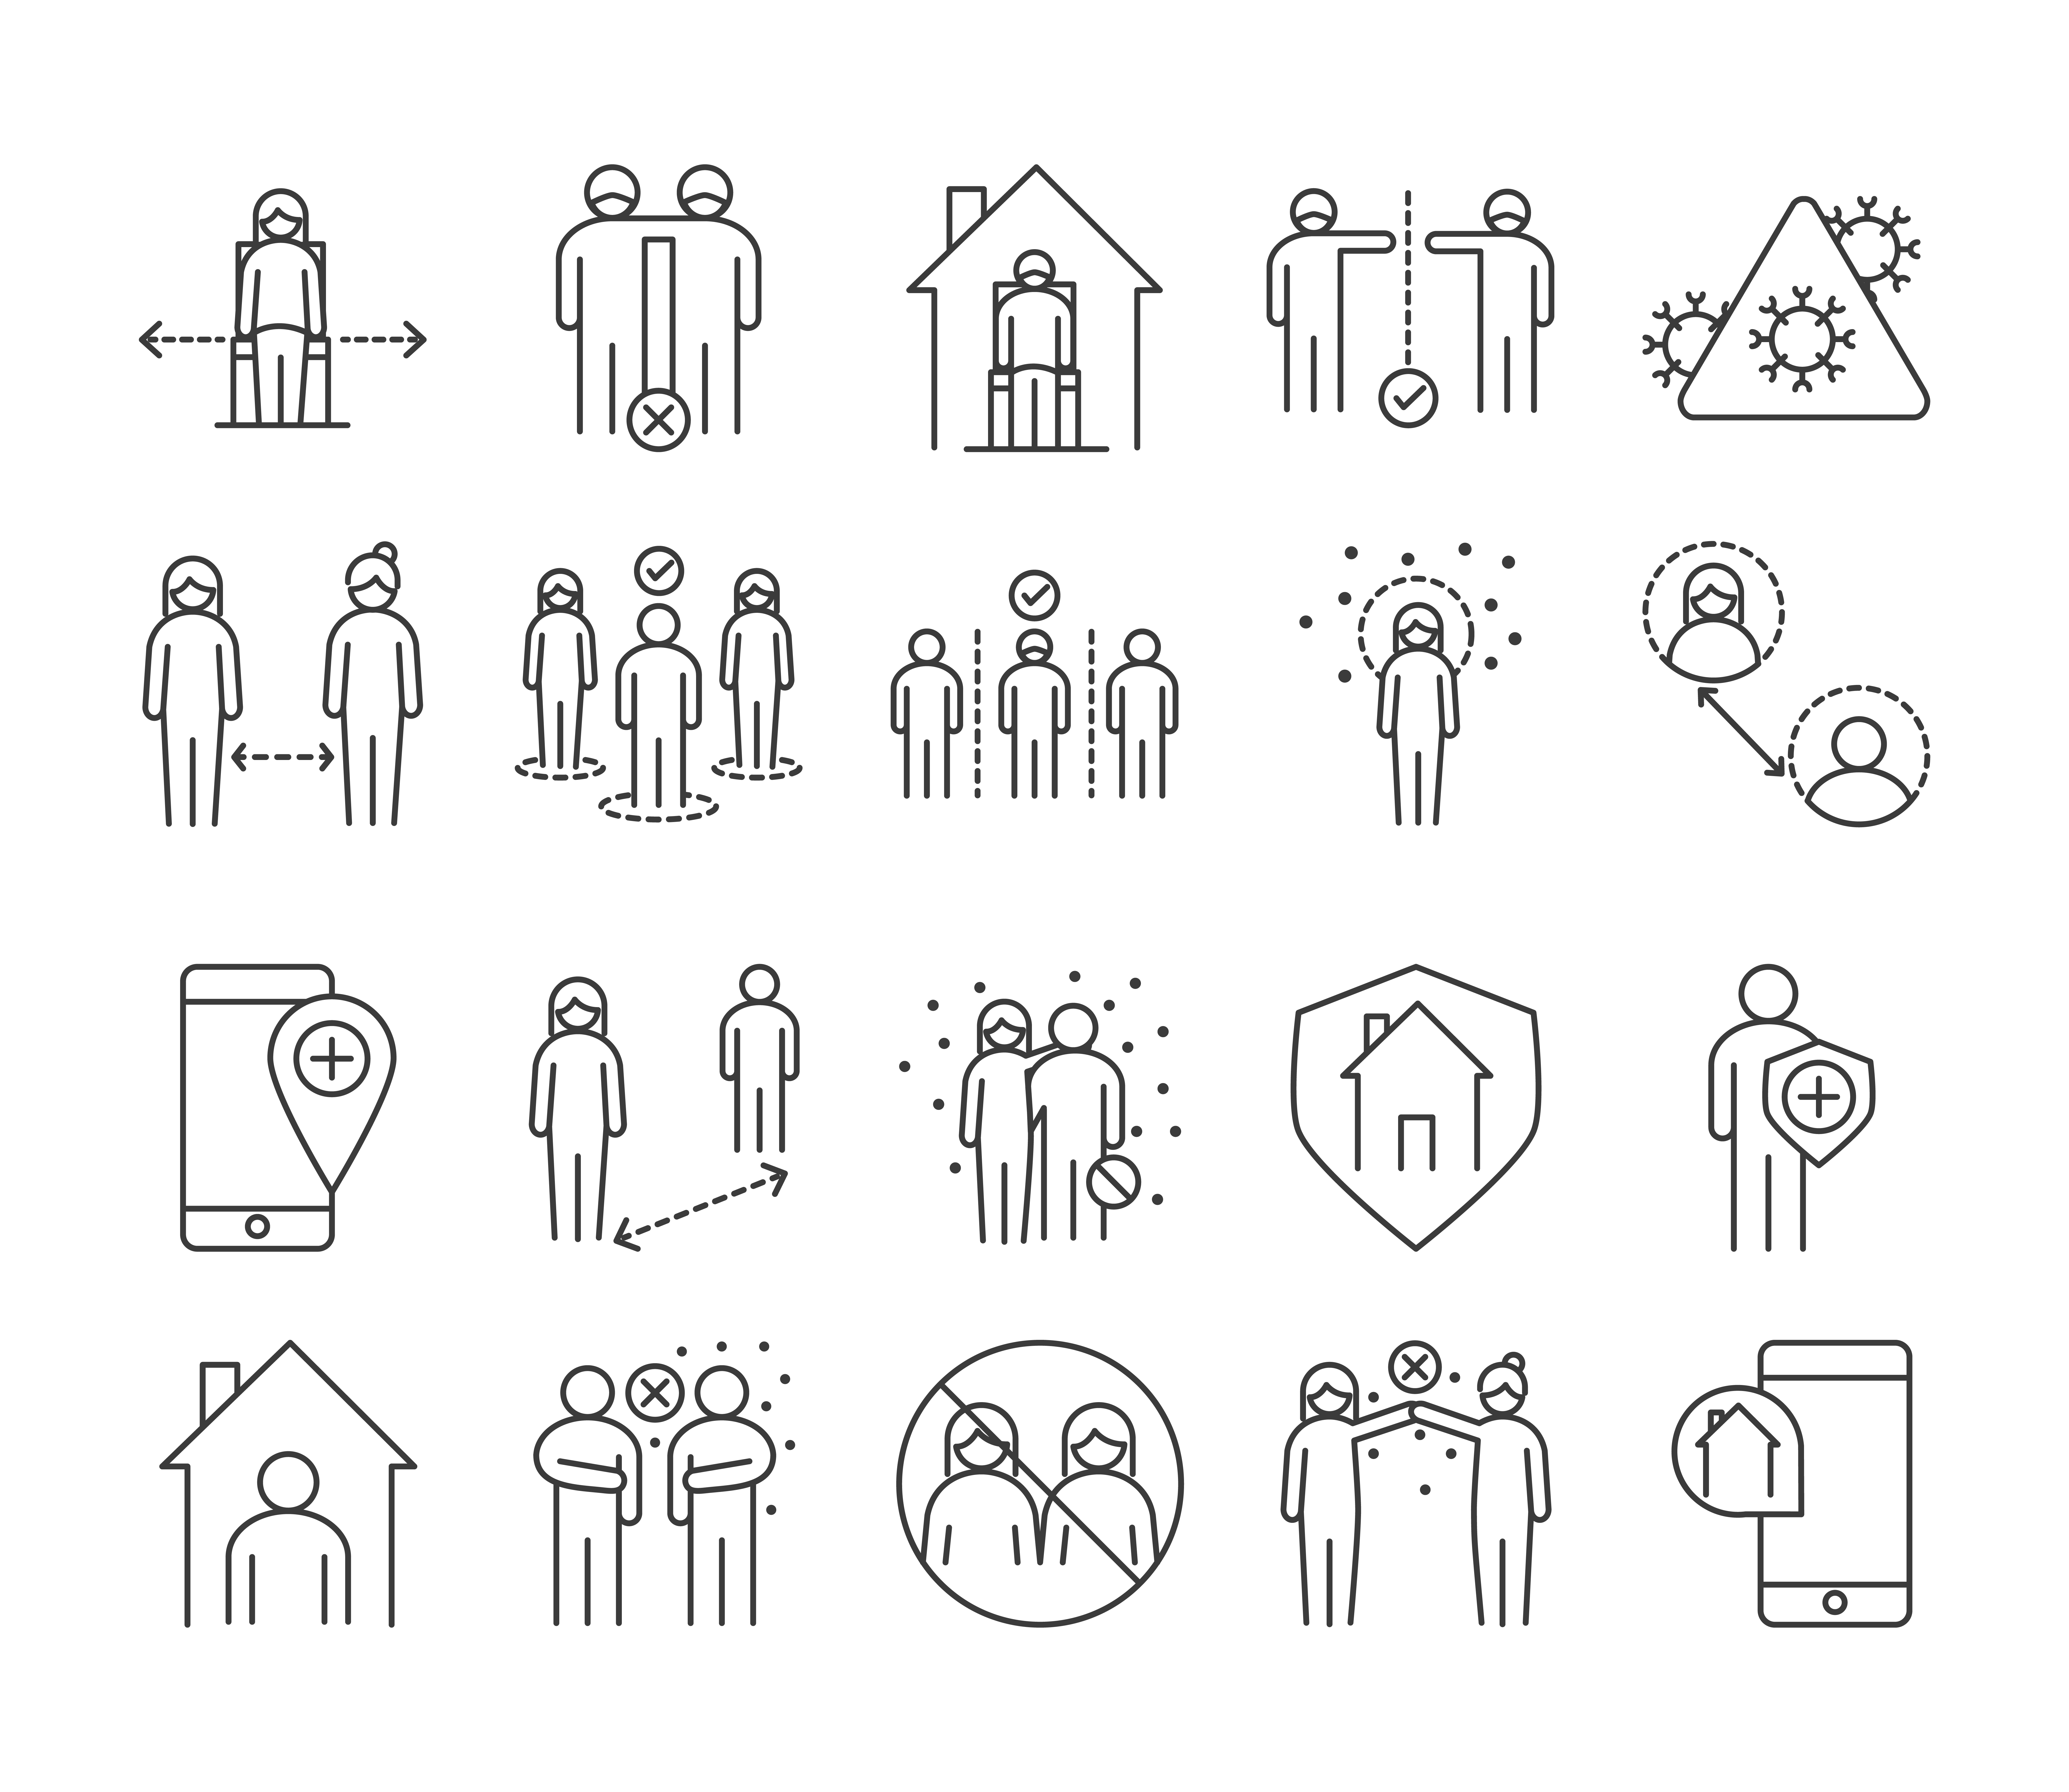 Viral infection and social distance pictogram icon pack